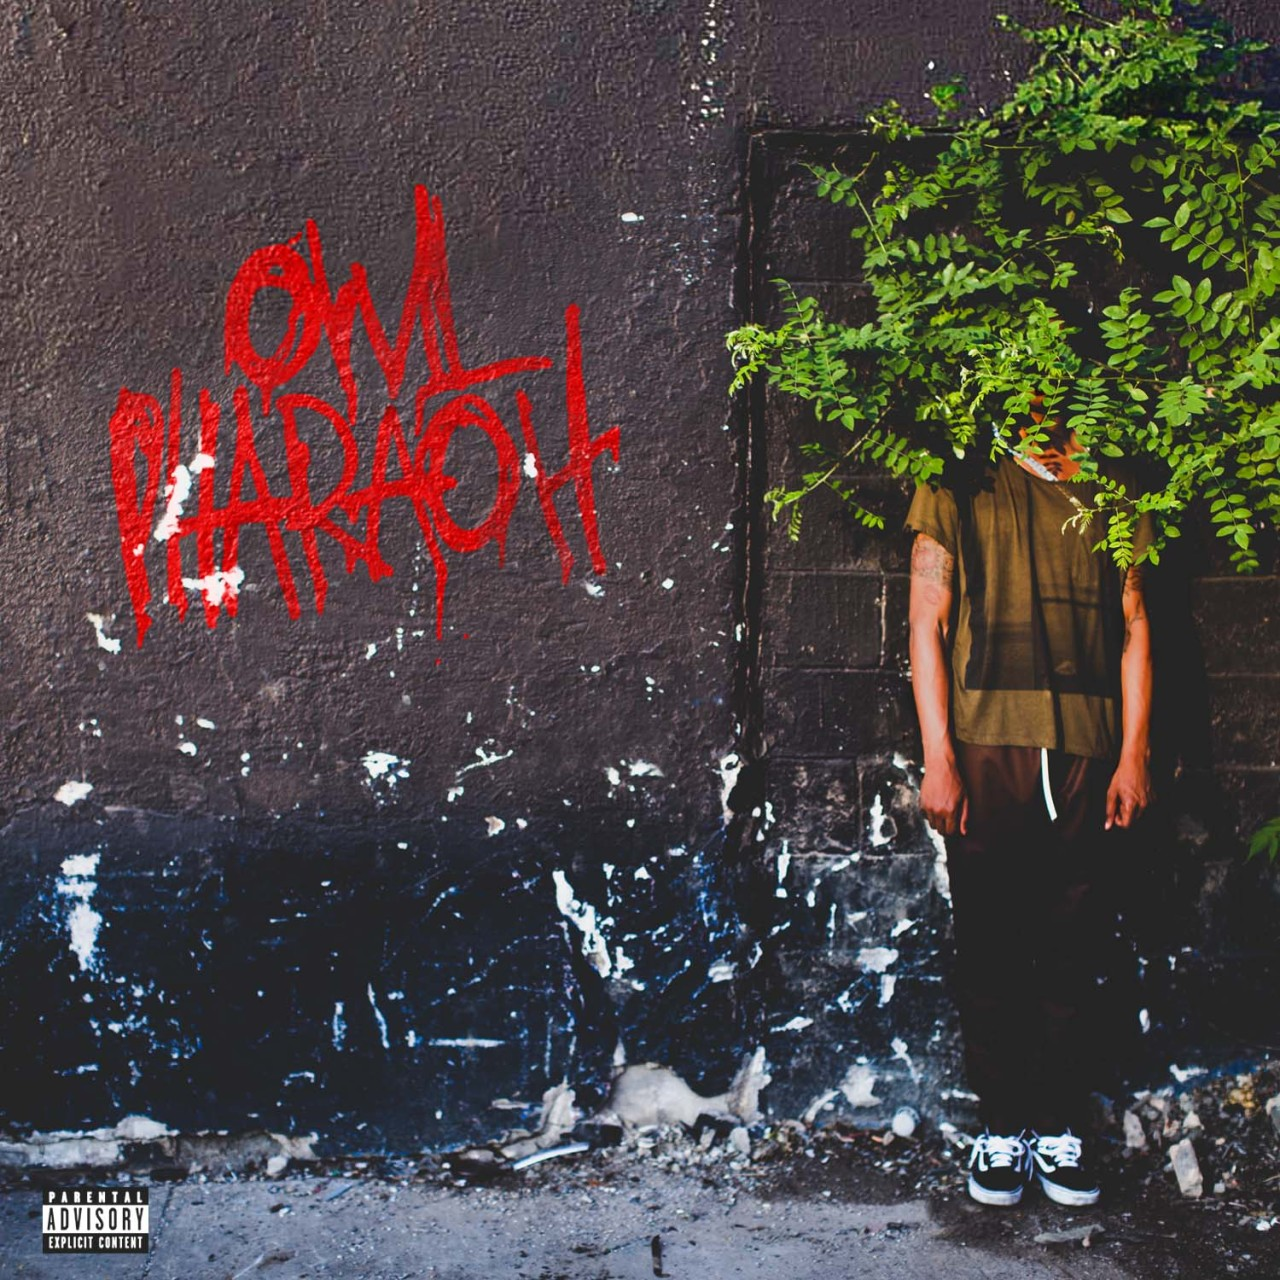 40ozvannyc:  TRAVI$ SCOTT – OWL PHARAOH